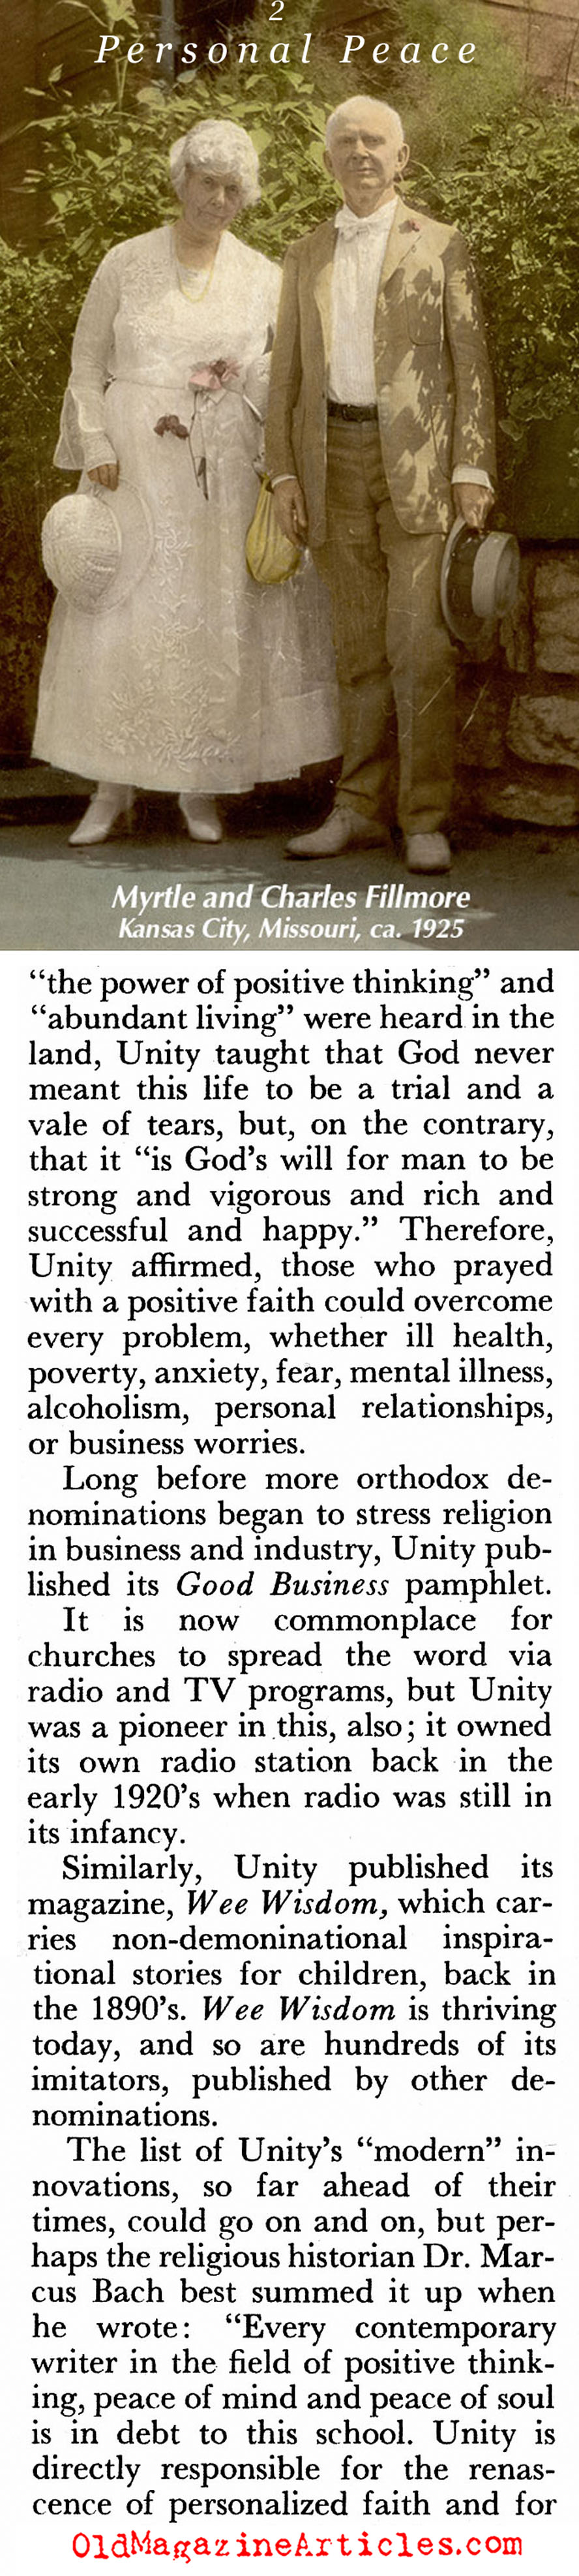 ''A Path Toward Personal Peace'' (Pageant Magazine, 1957)